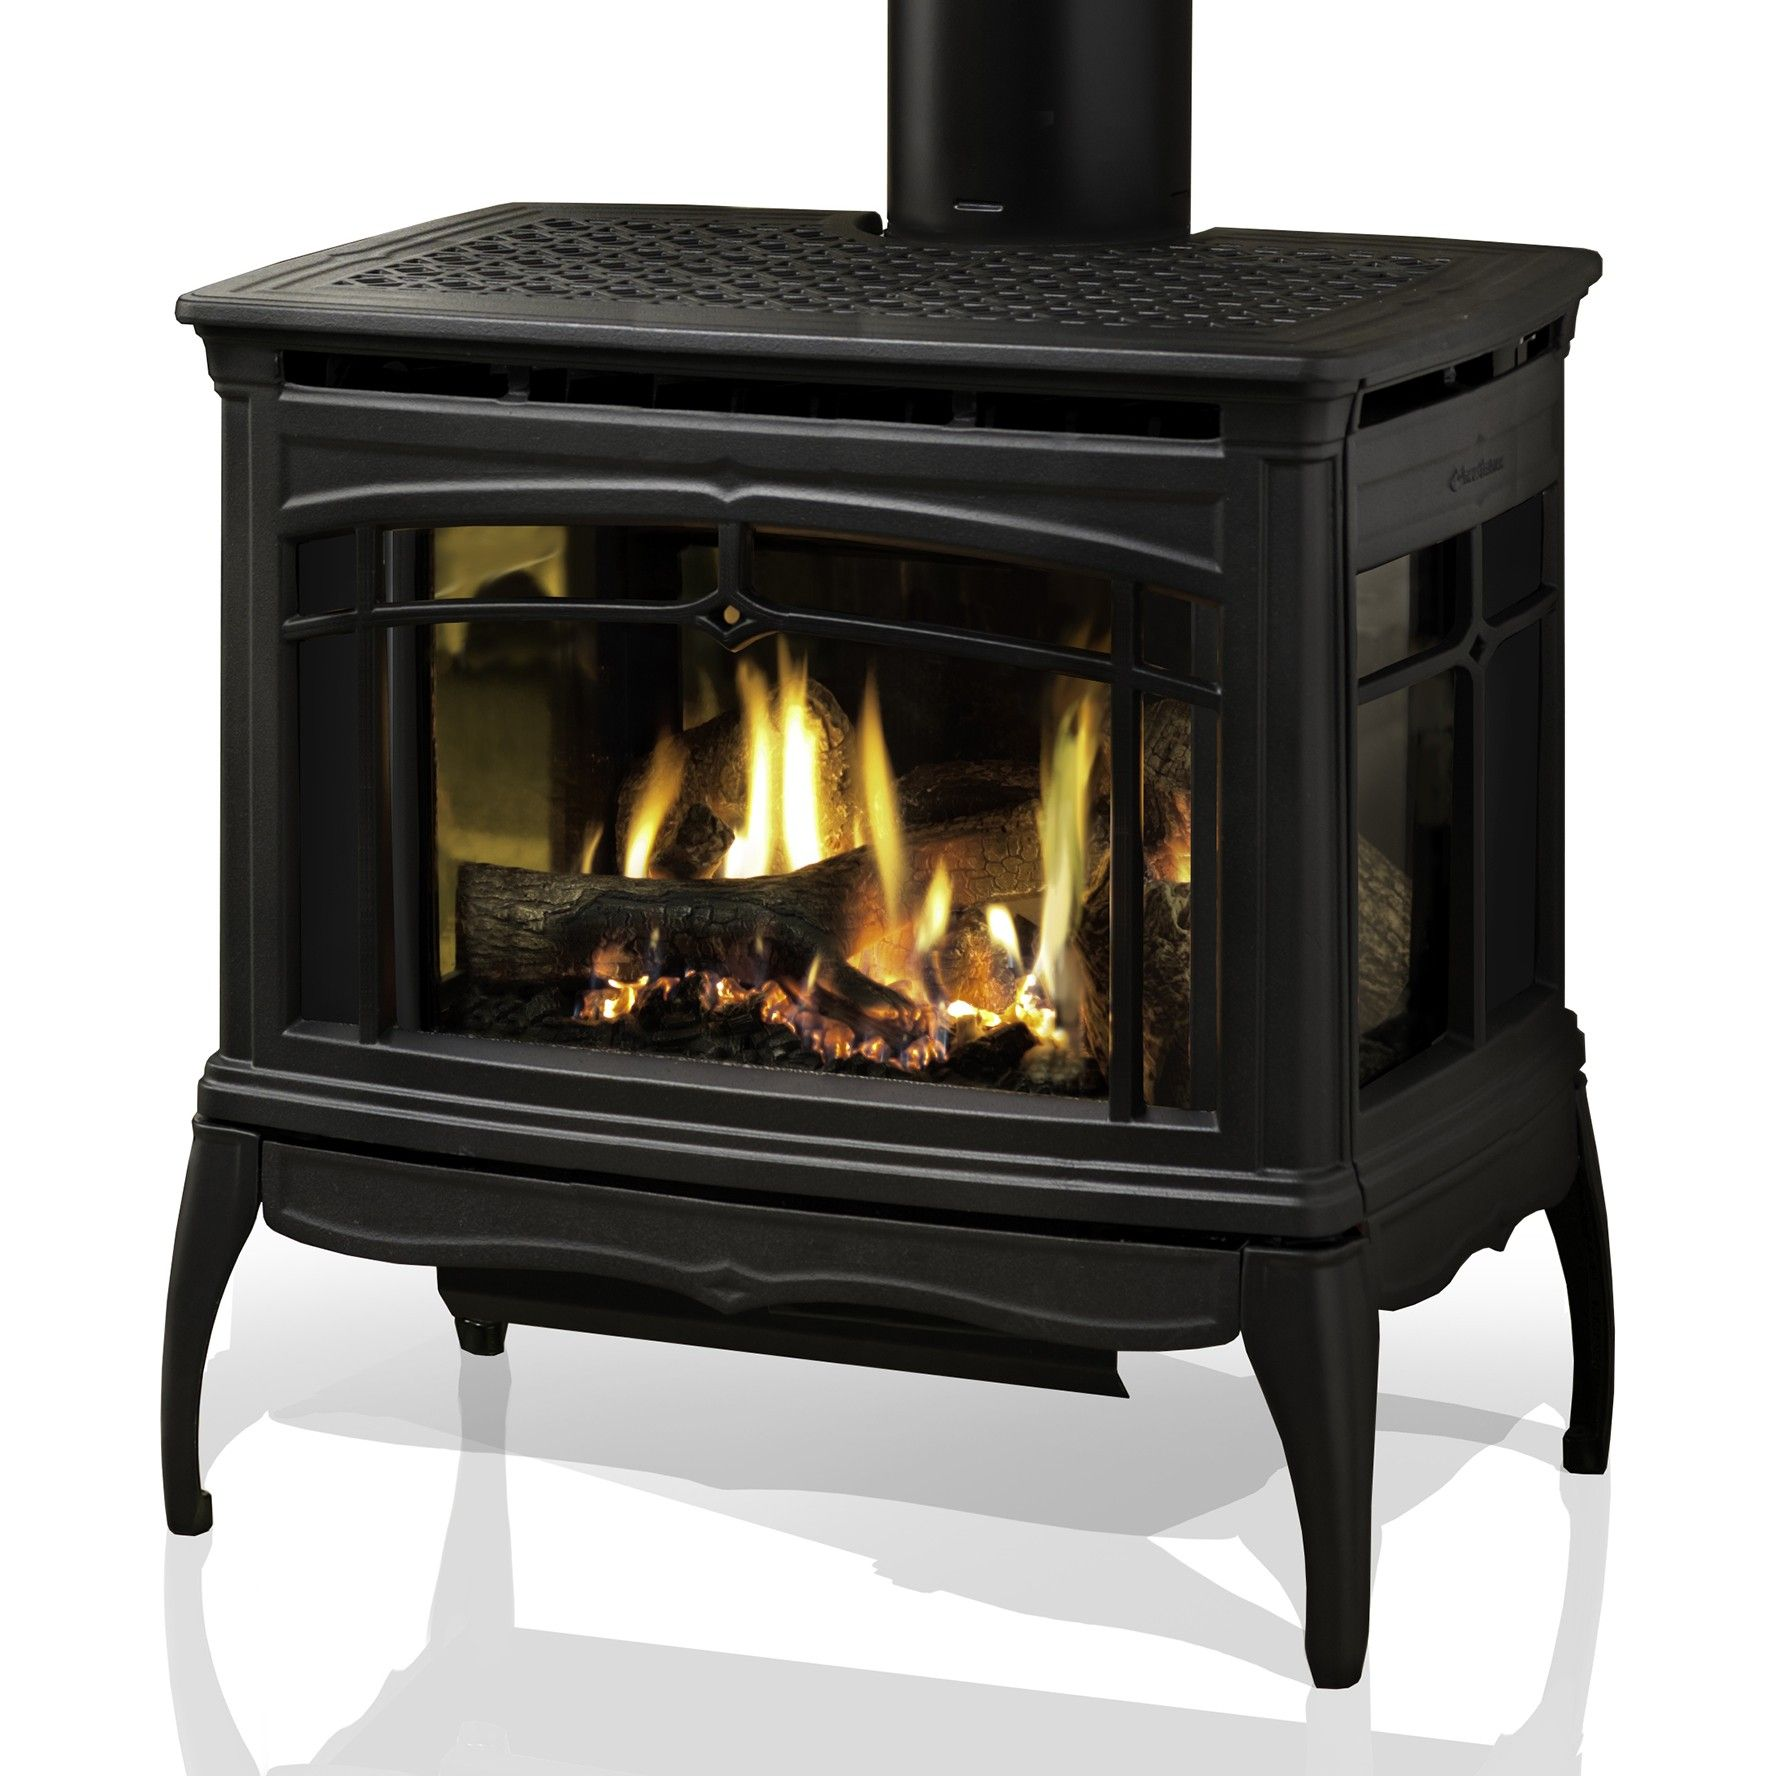 hearthstone waitsfield dx 8770 gas stove stoves fireplaces and